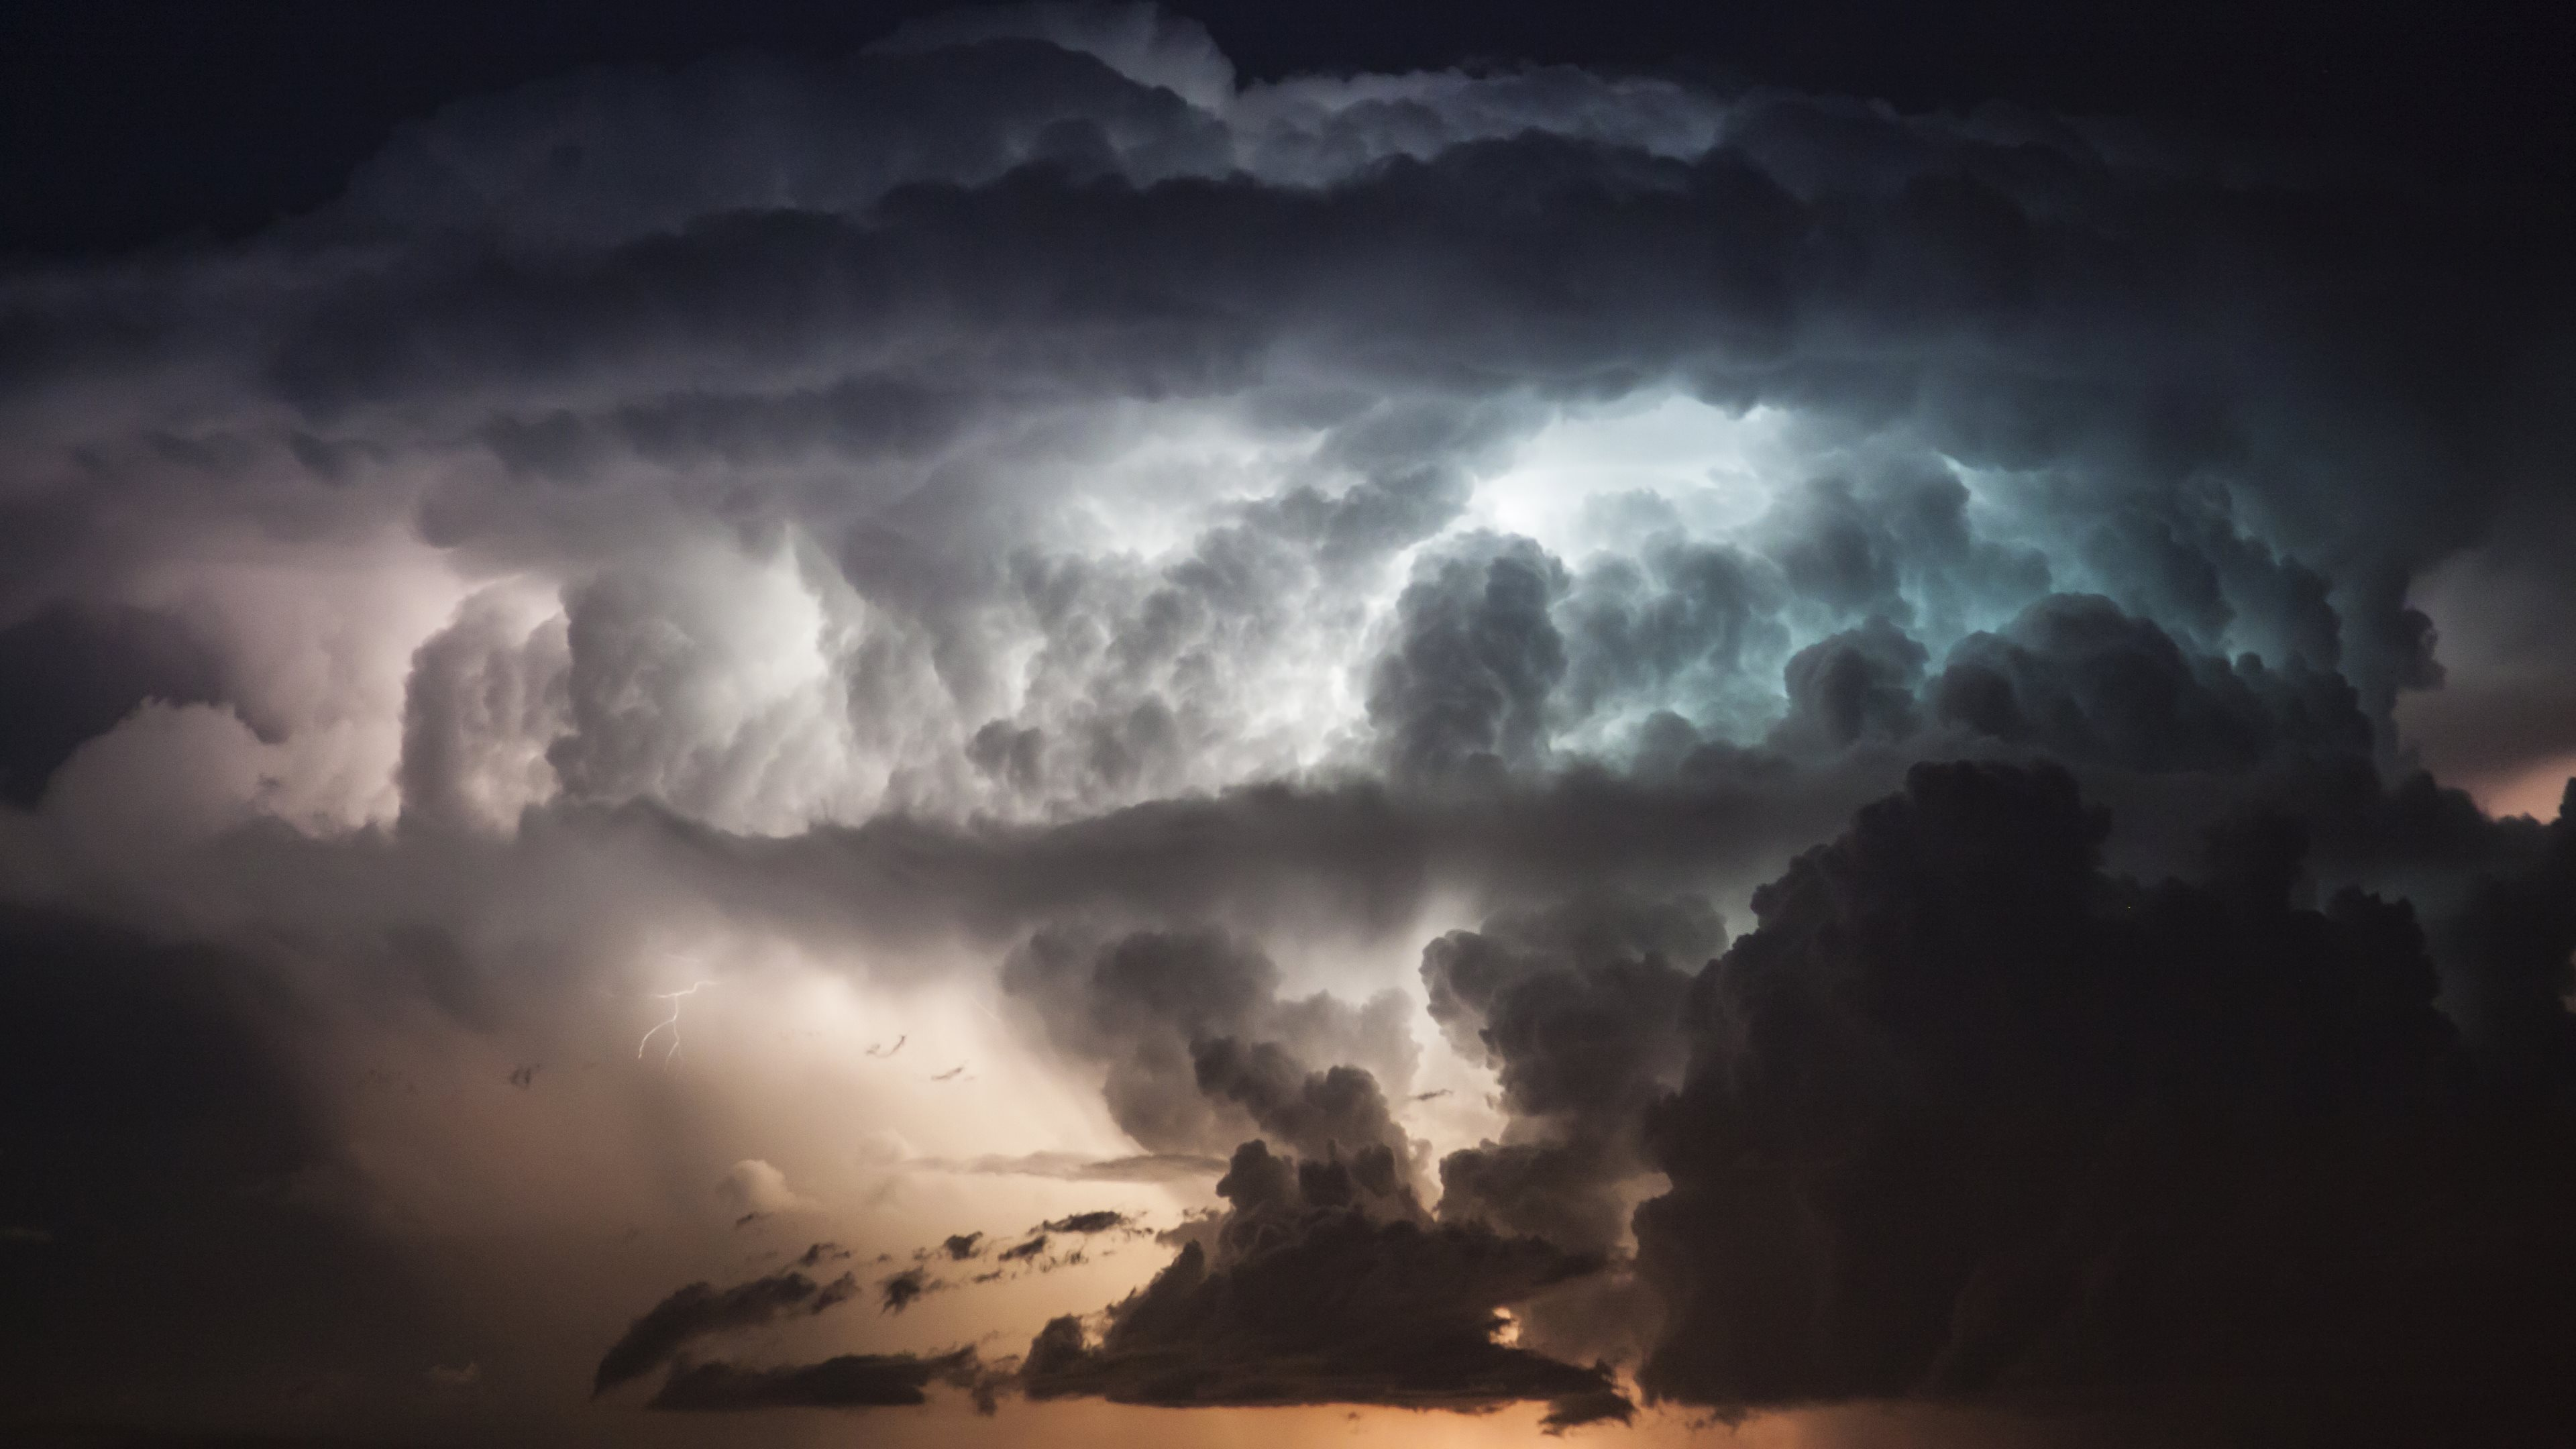 Thunderstorm HD Wallpapers. 4K Wallpapers